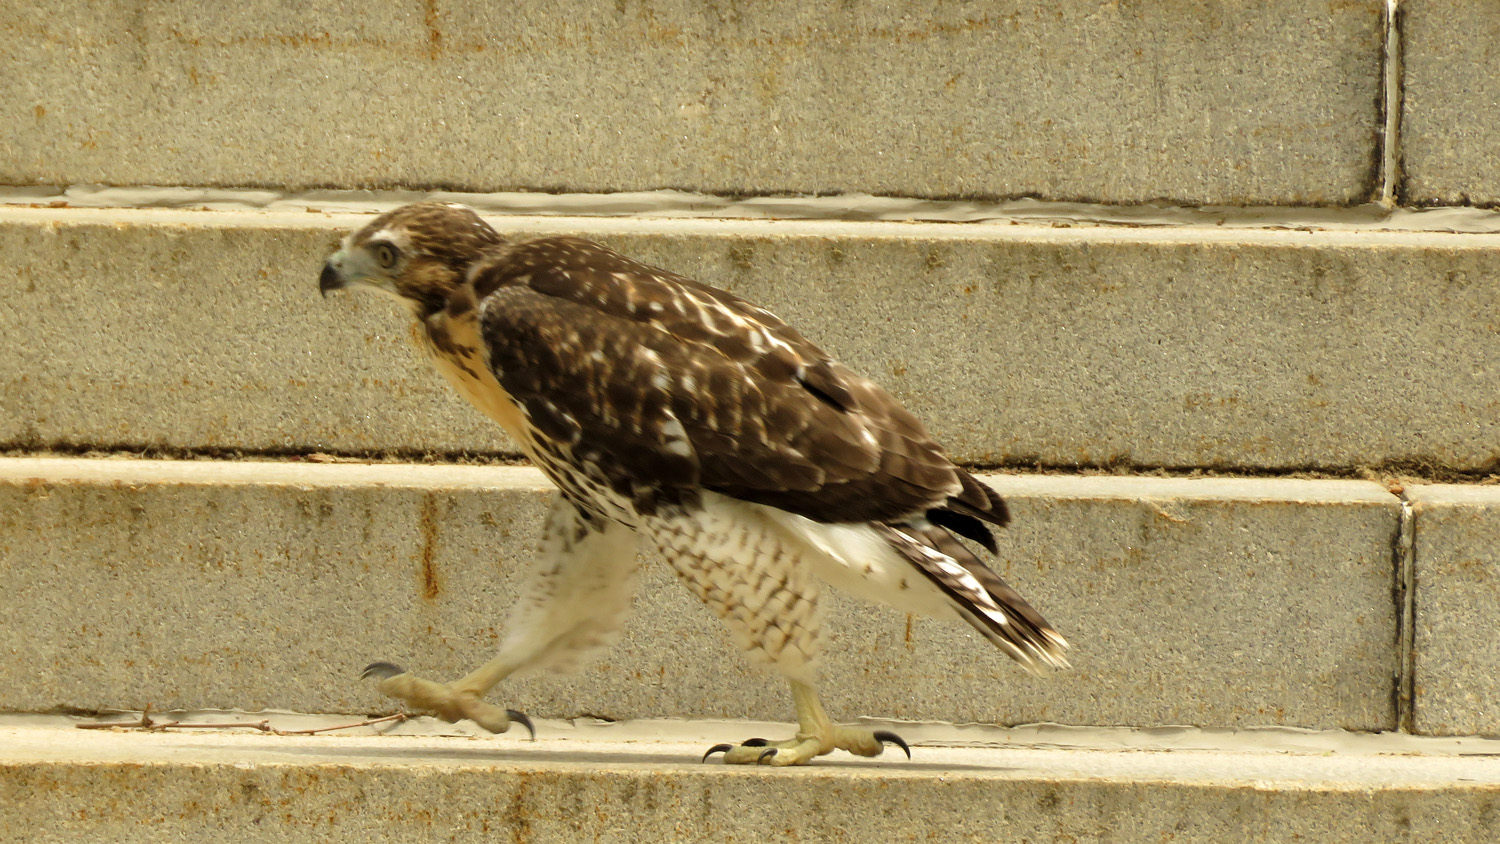 The first Grant's Tomb fledgling on the steps of the monument, June 11, 2018.